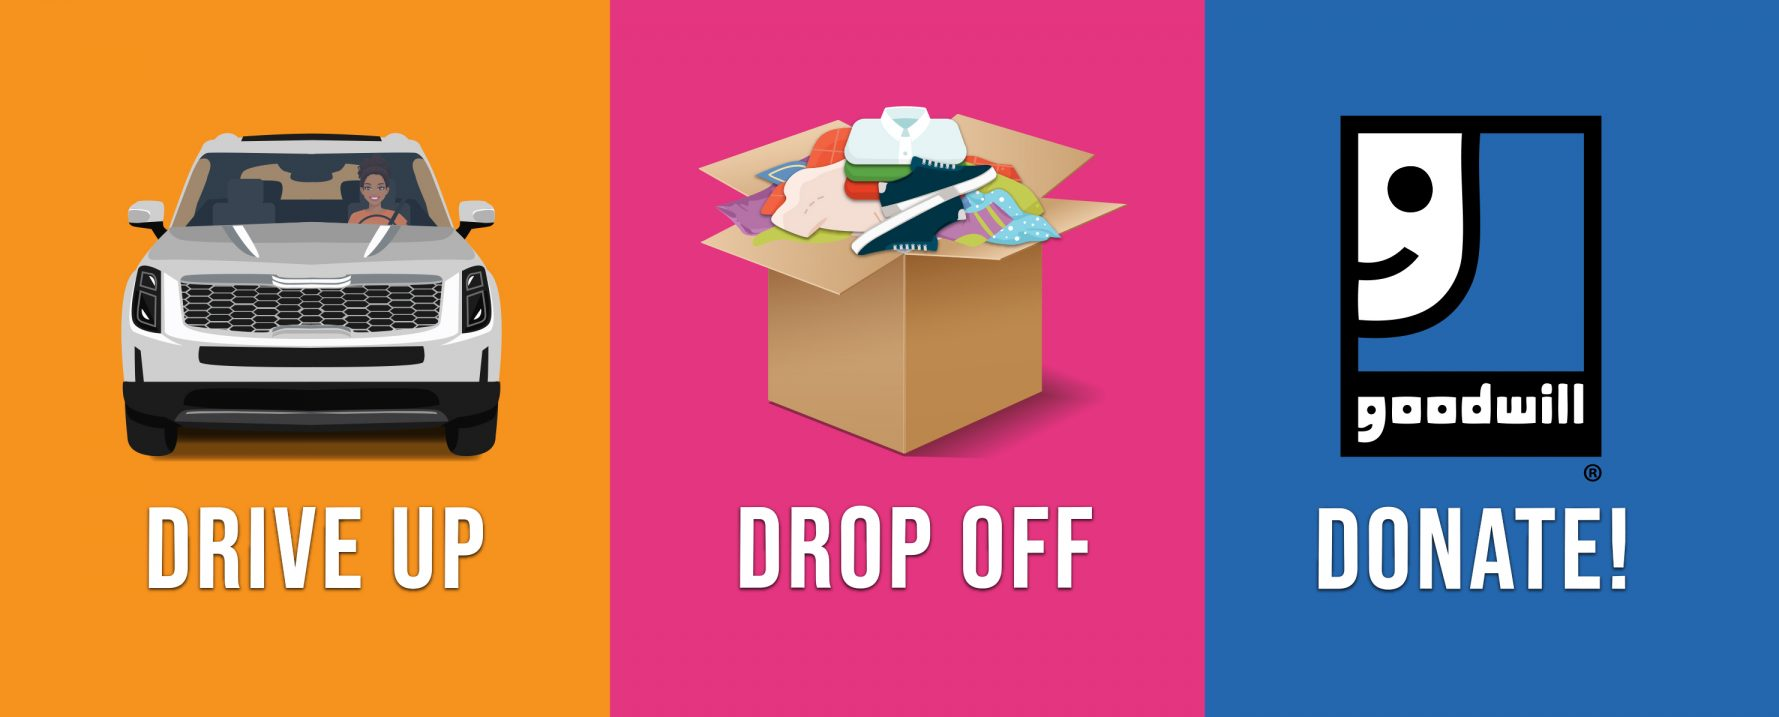 Drive Up, Drop Off, Donate